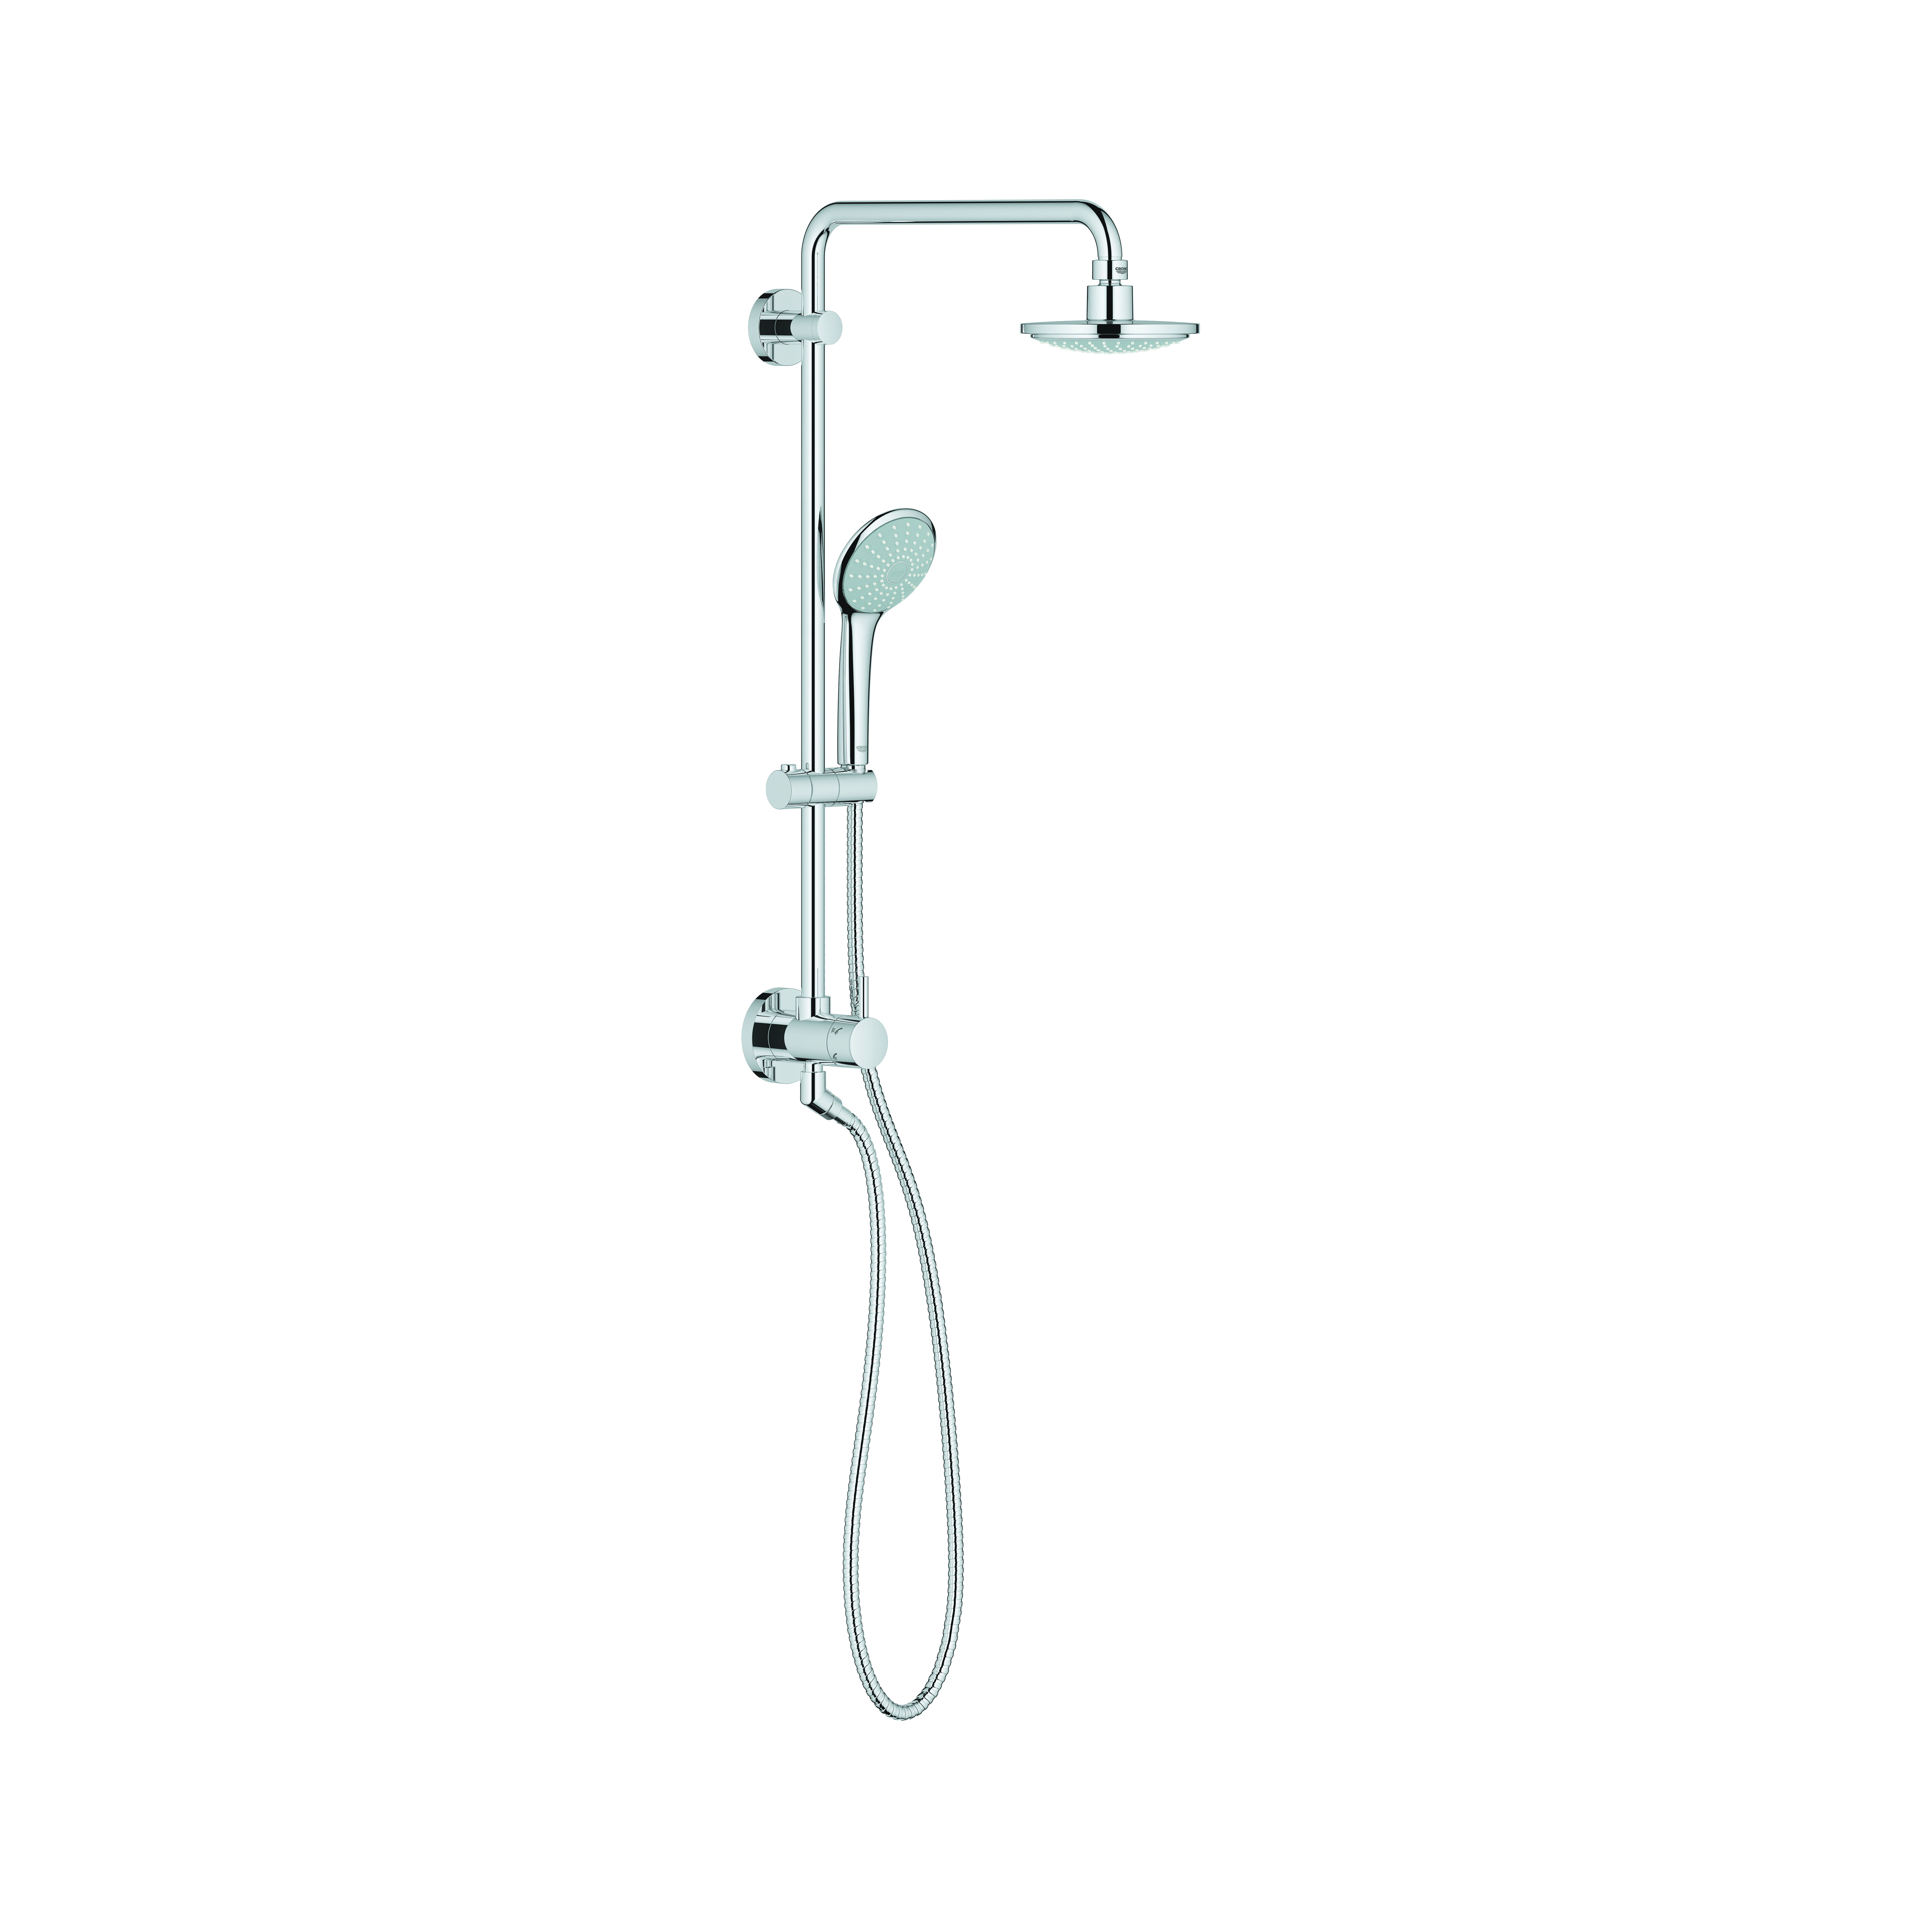 GROHE 27.867000 Retro-fit 160 Shower System, 2.5 gpm, Slide Bar: No, StarLight® Chrome, Import